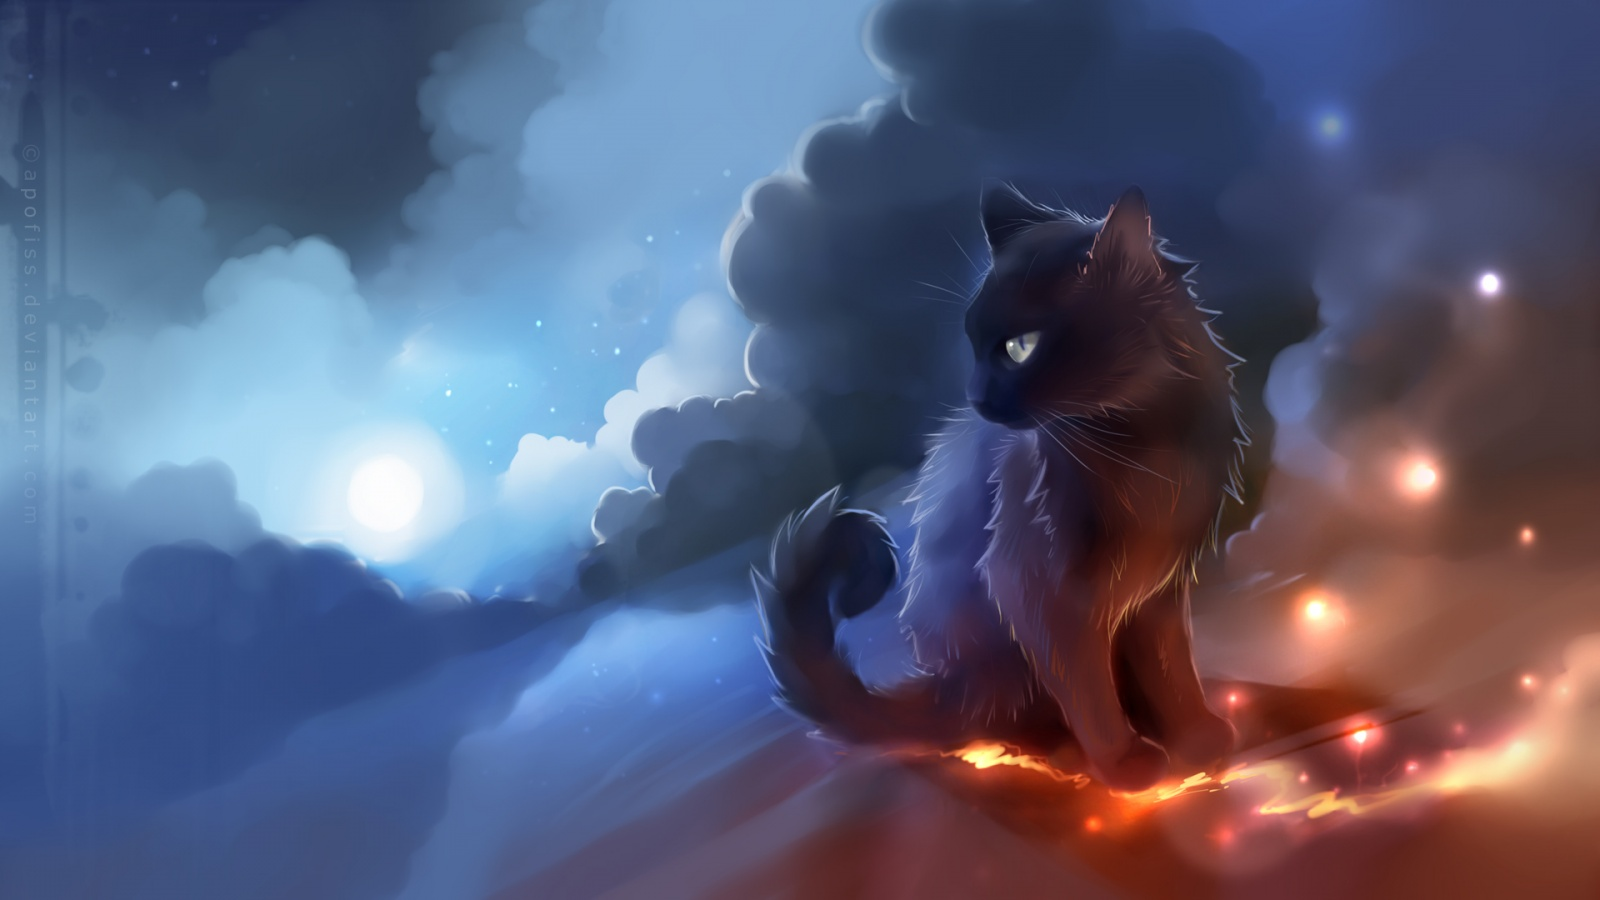 Warrior Cat #4154850, 1920x1080